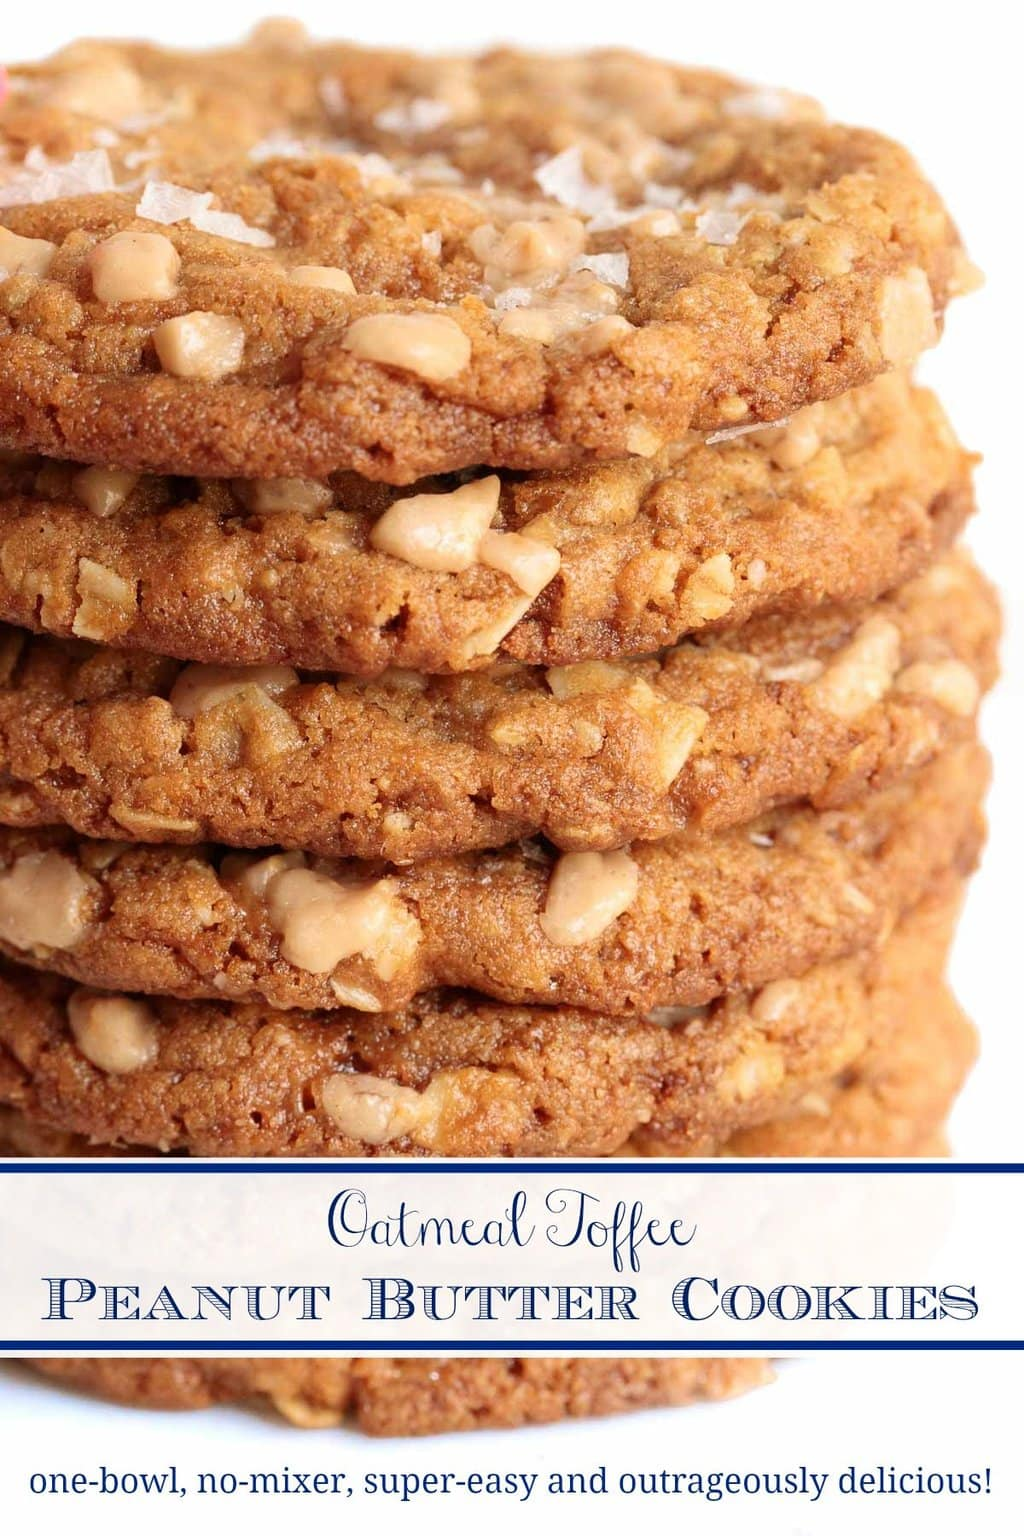 Toffee Oatmeal  Peanut Butter Cookies